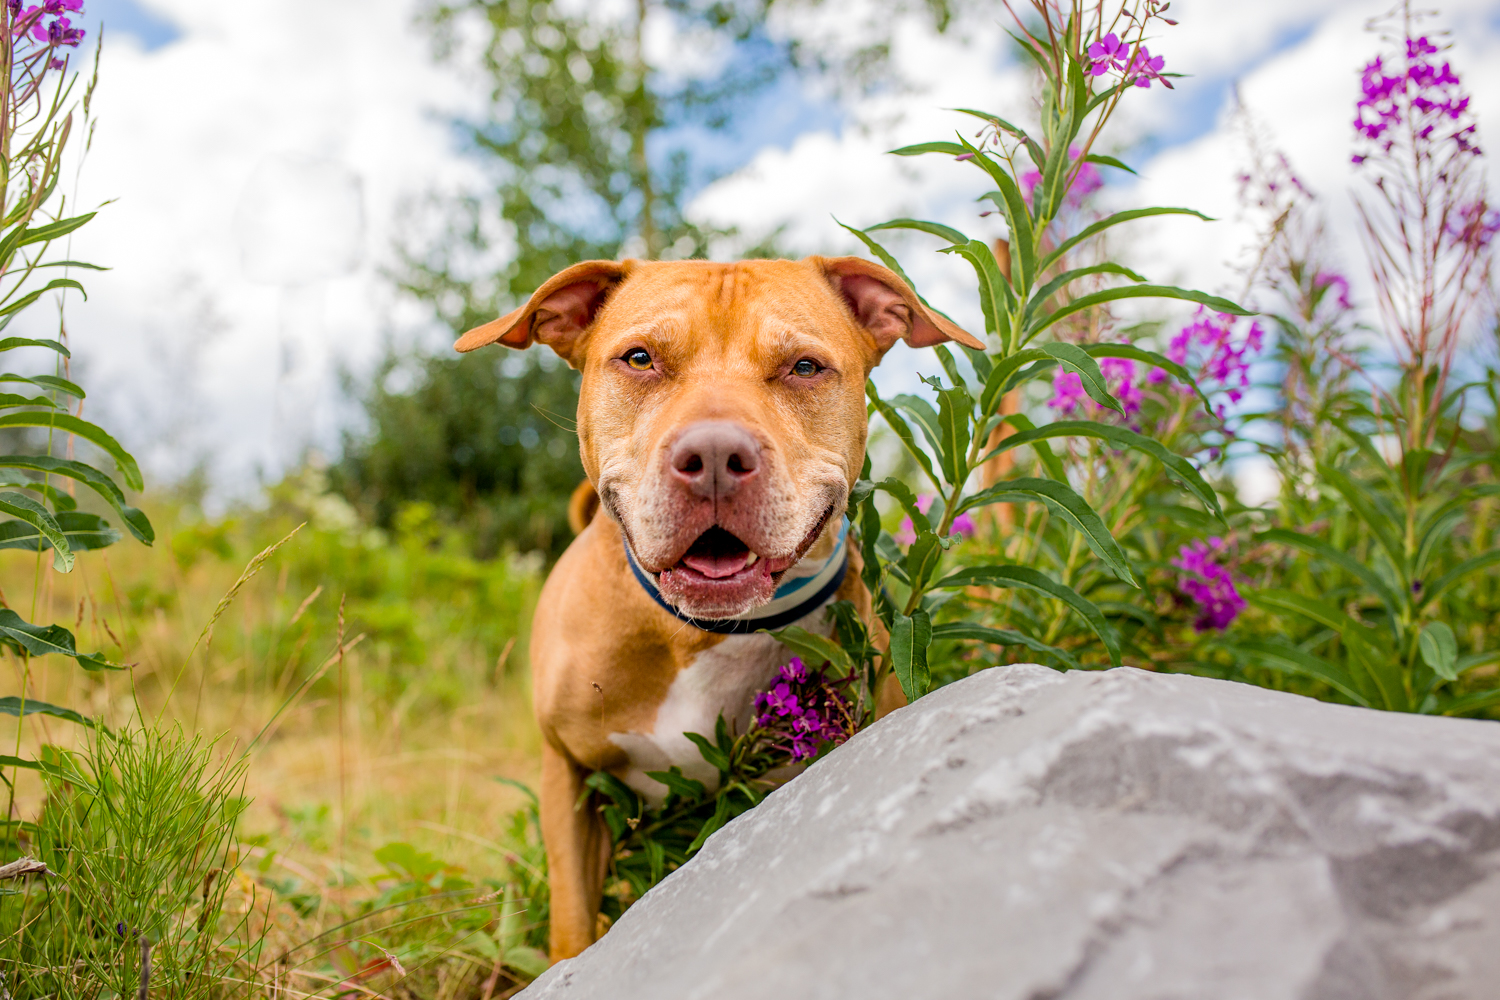 Dog behind a rock and surrounded by purple flowers